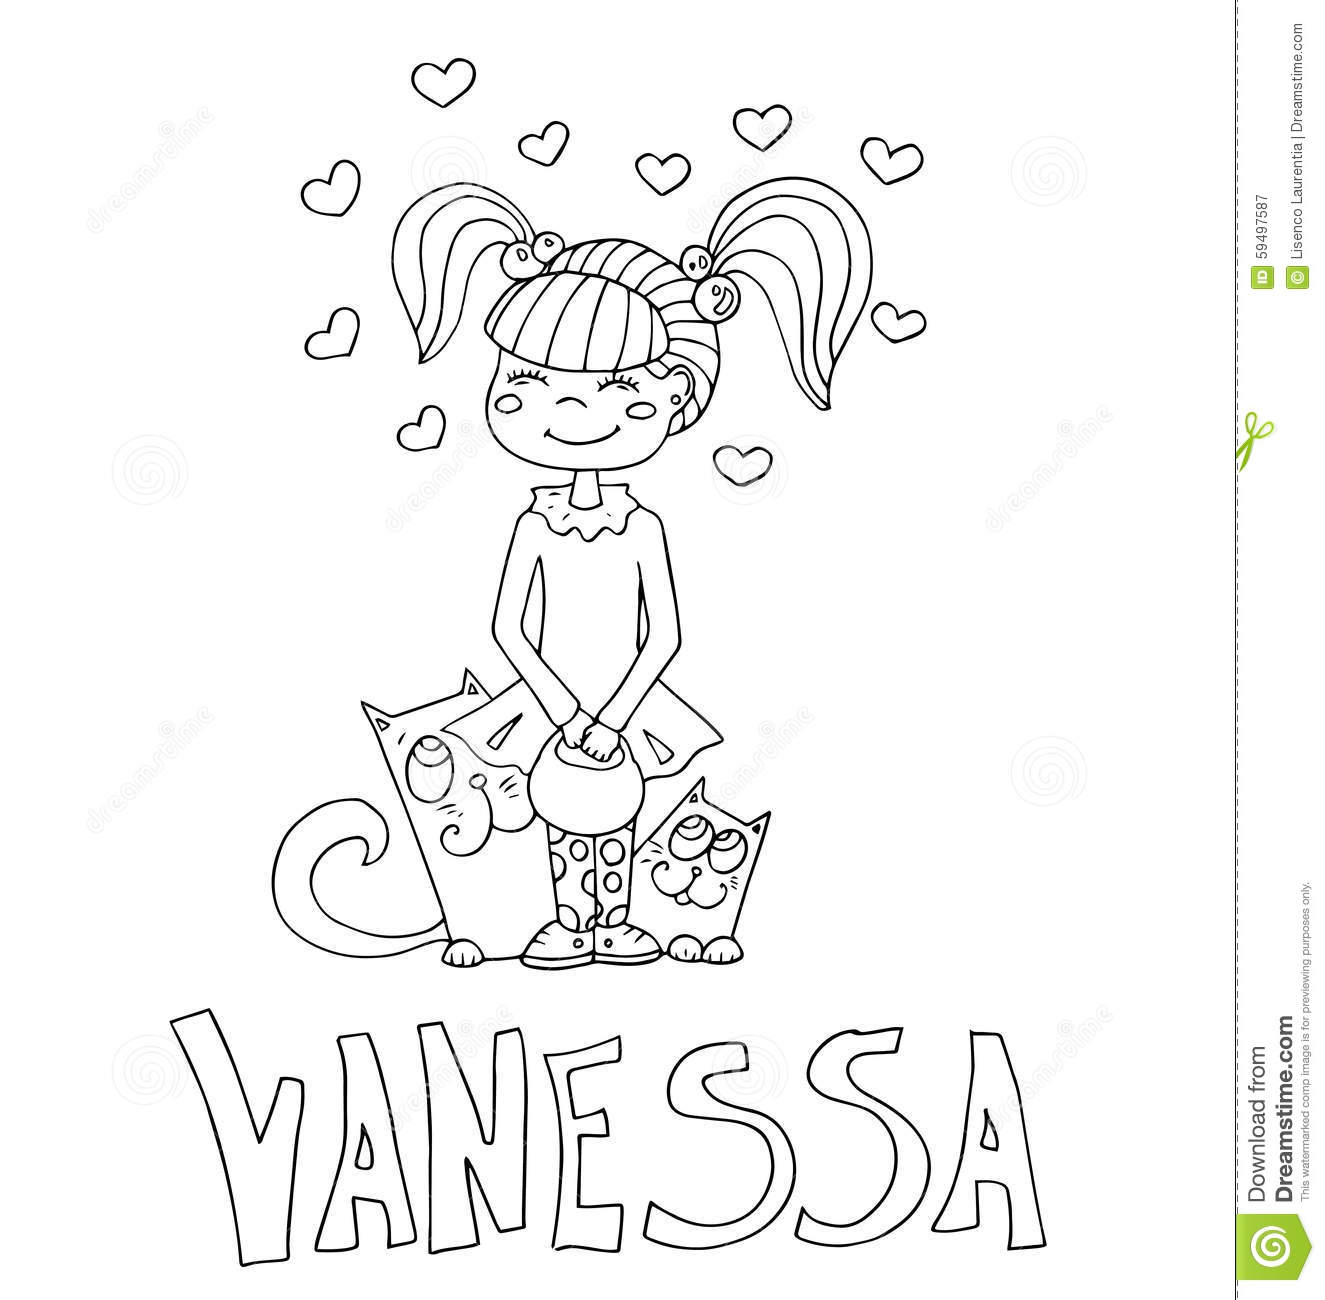 vanessa coloring pages coloring page vanessa and sports pages vanessa coloring